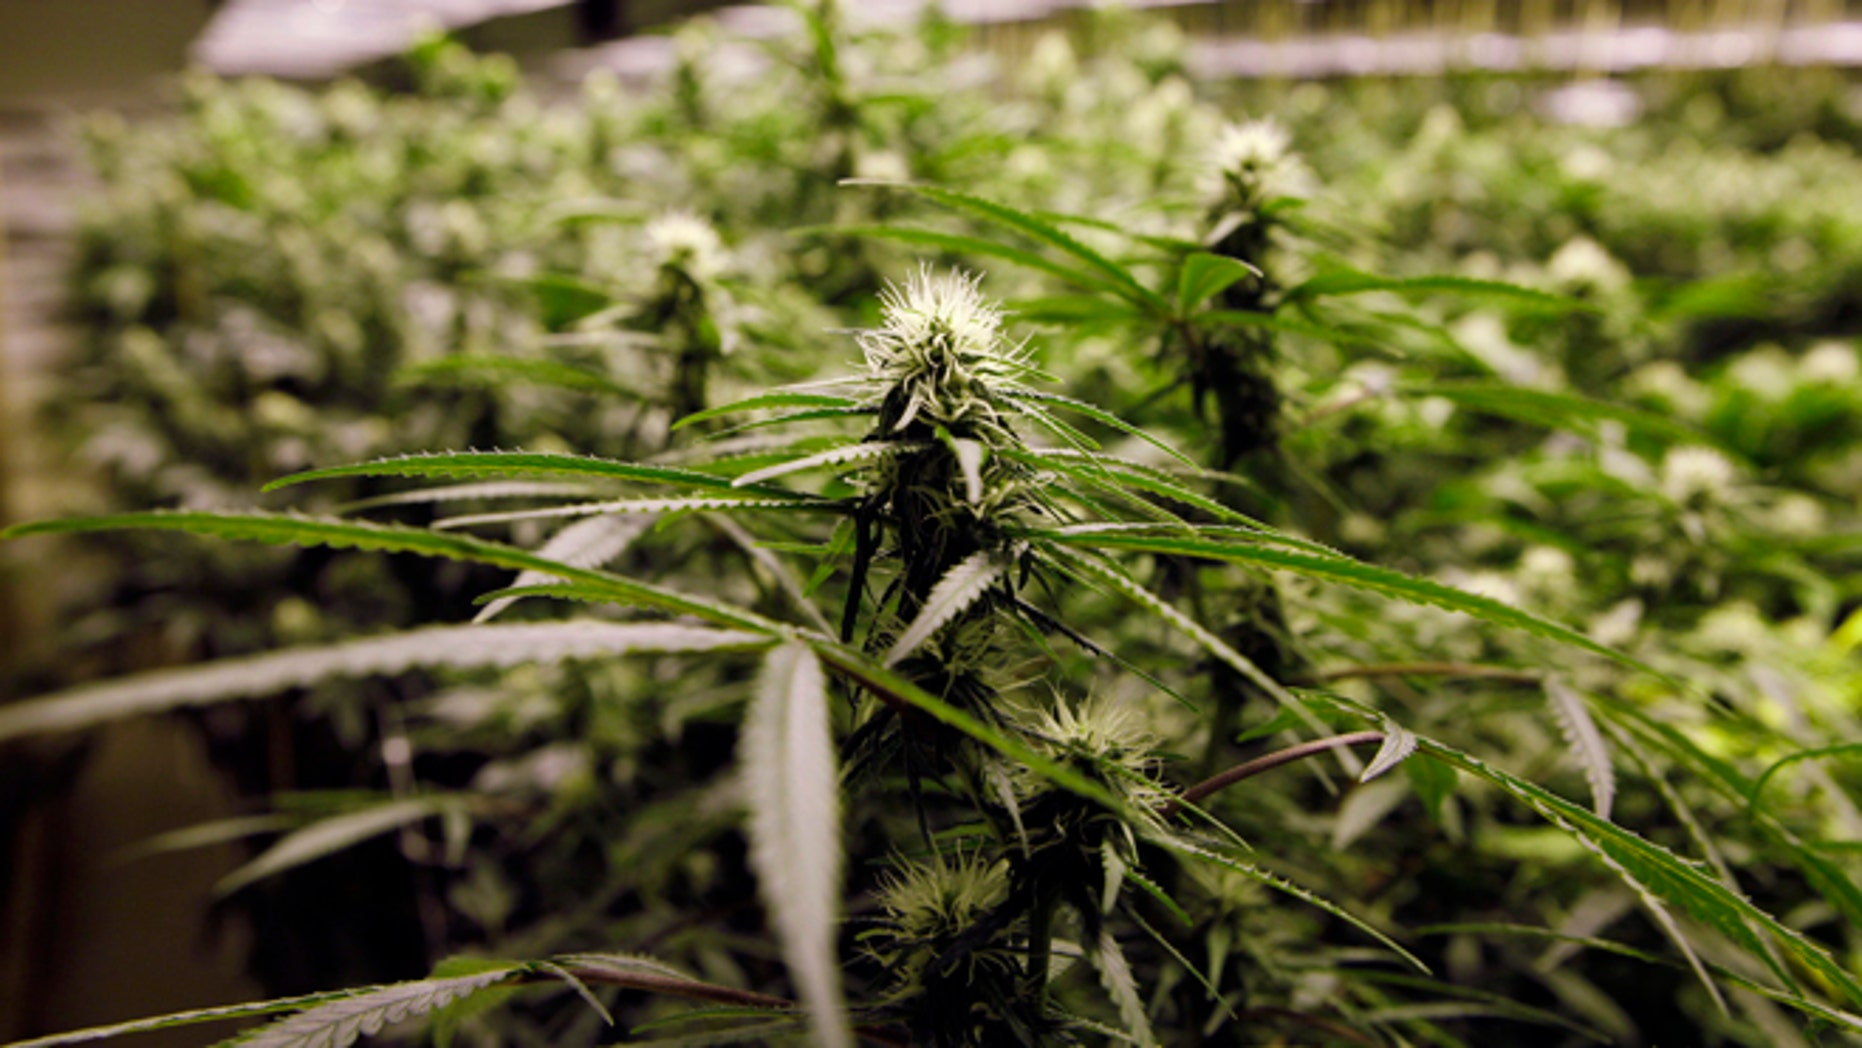 FILE: Nov. 8, 2012: Marijuana plants flourish under the lights at a grow house in Denver.